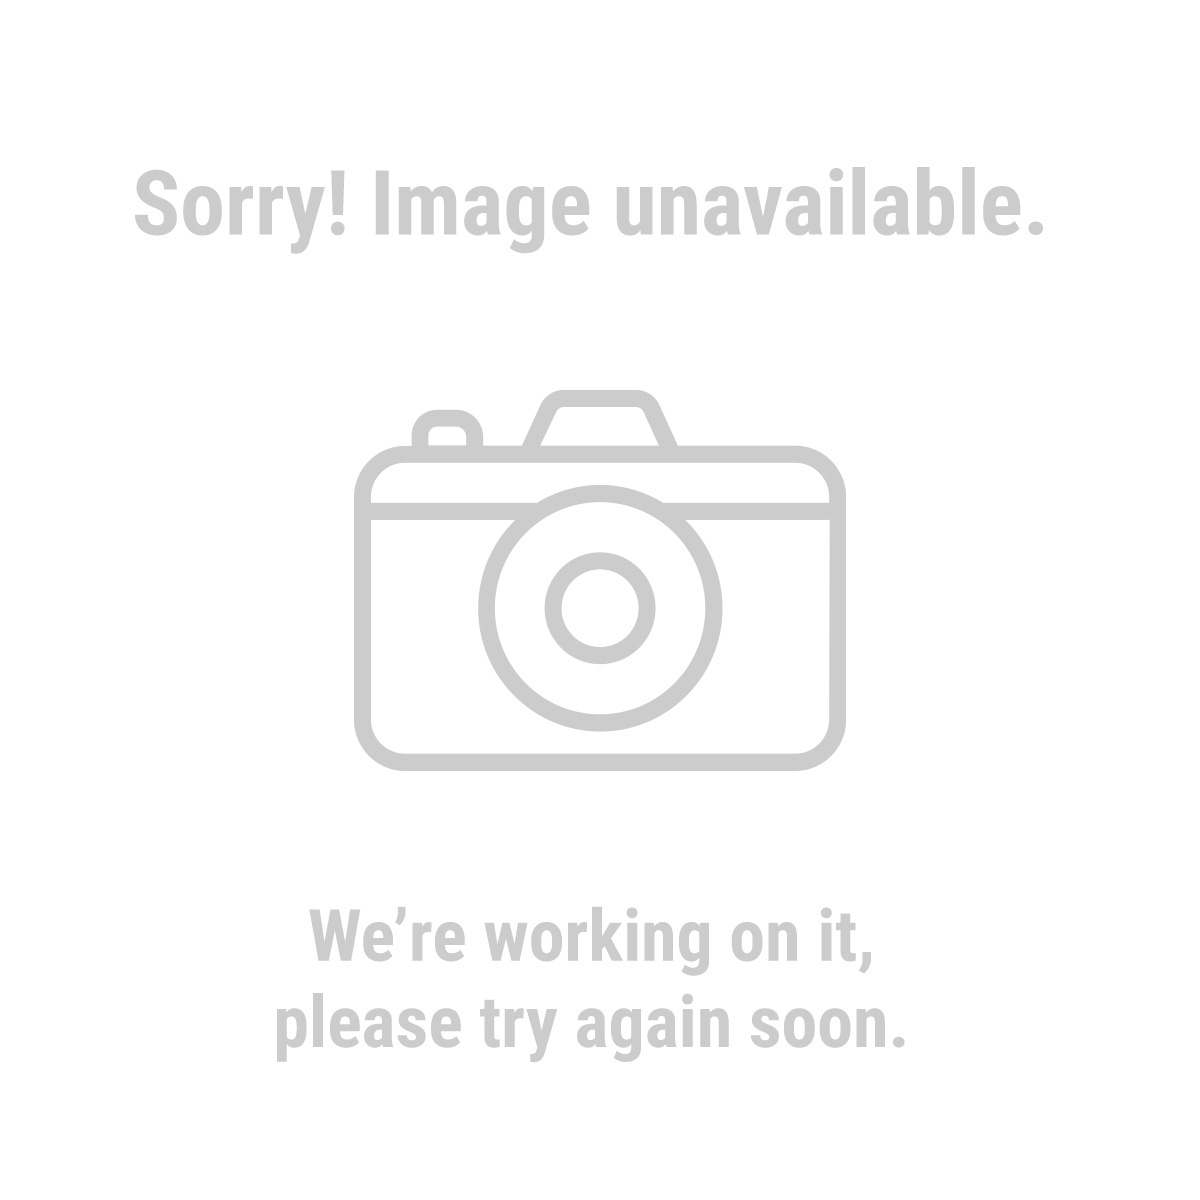 HFT 68349 Super Glue Gel, 10 Pack